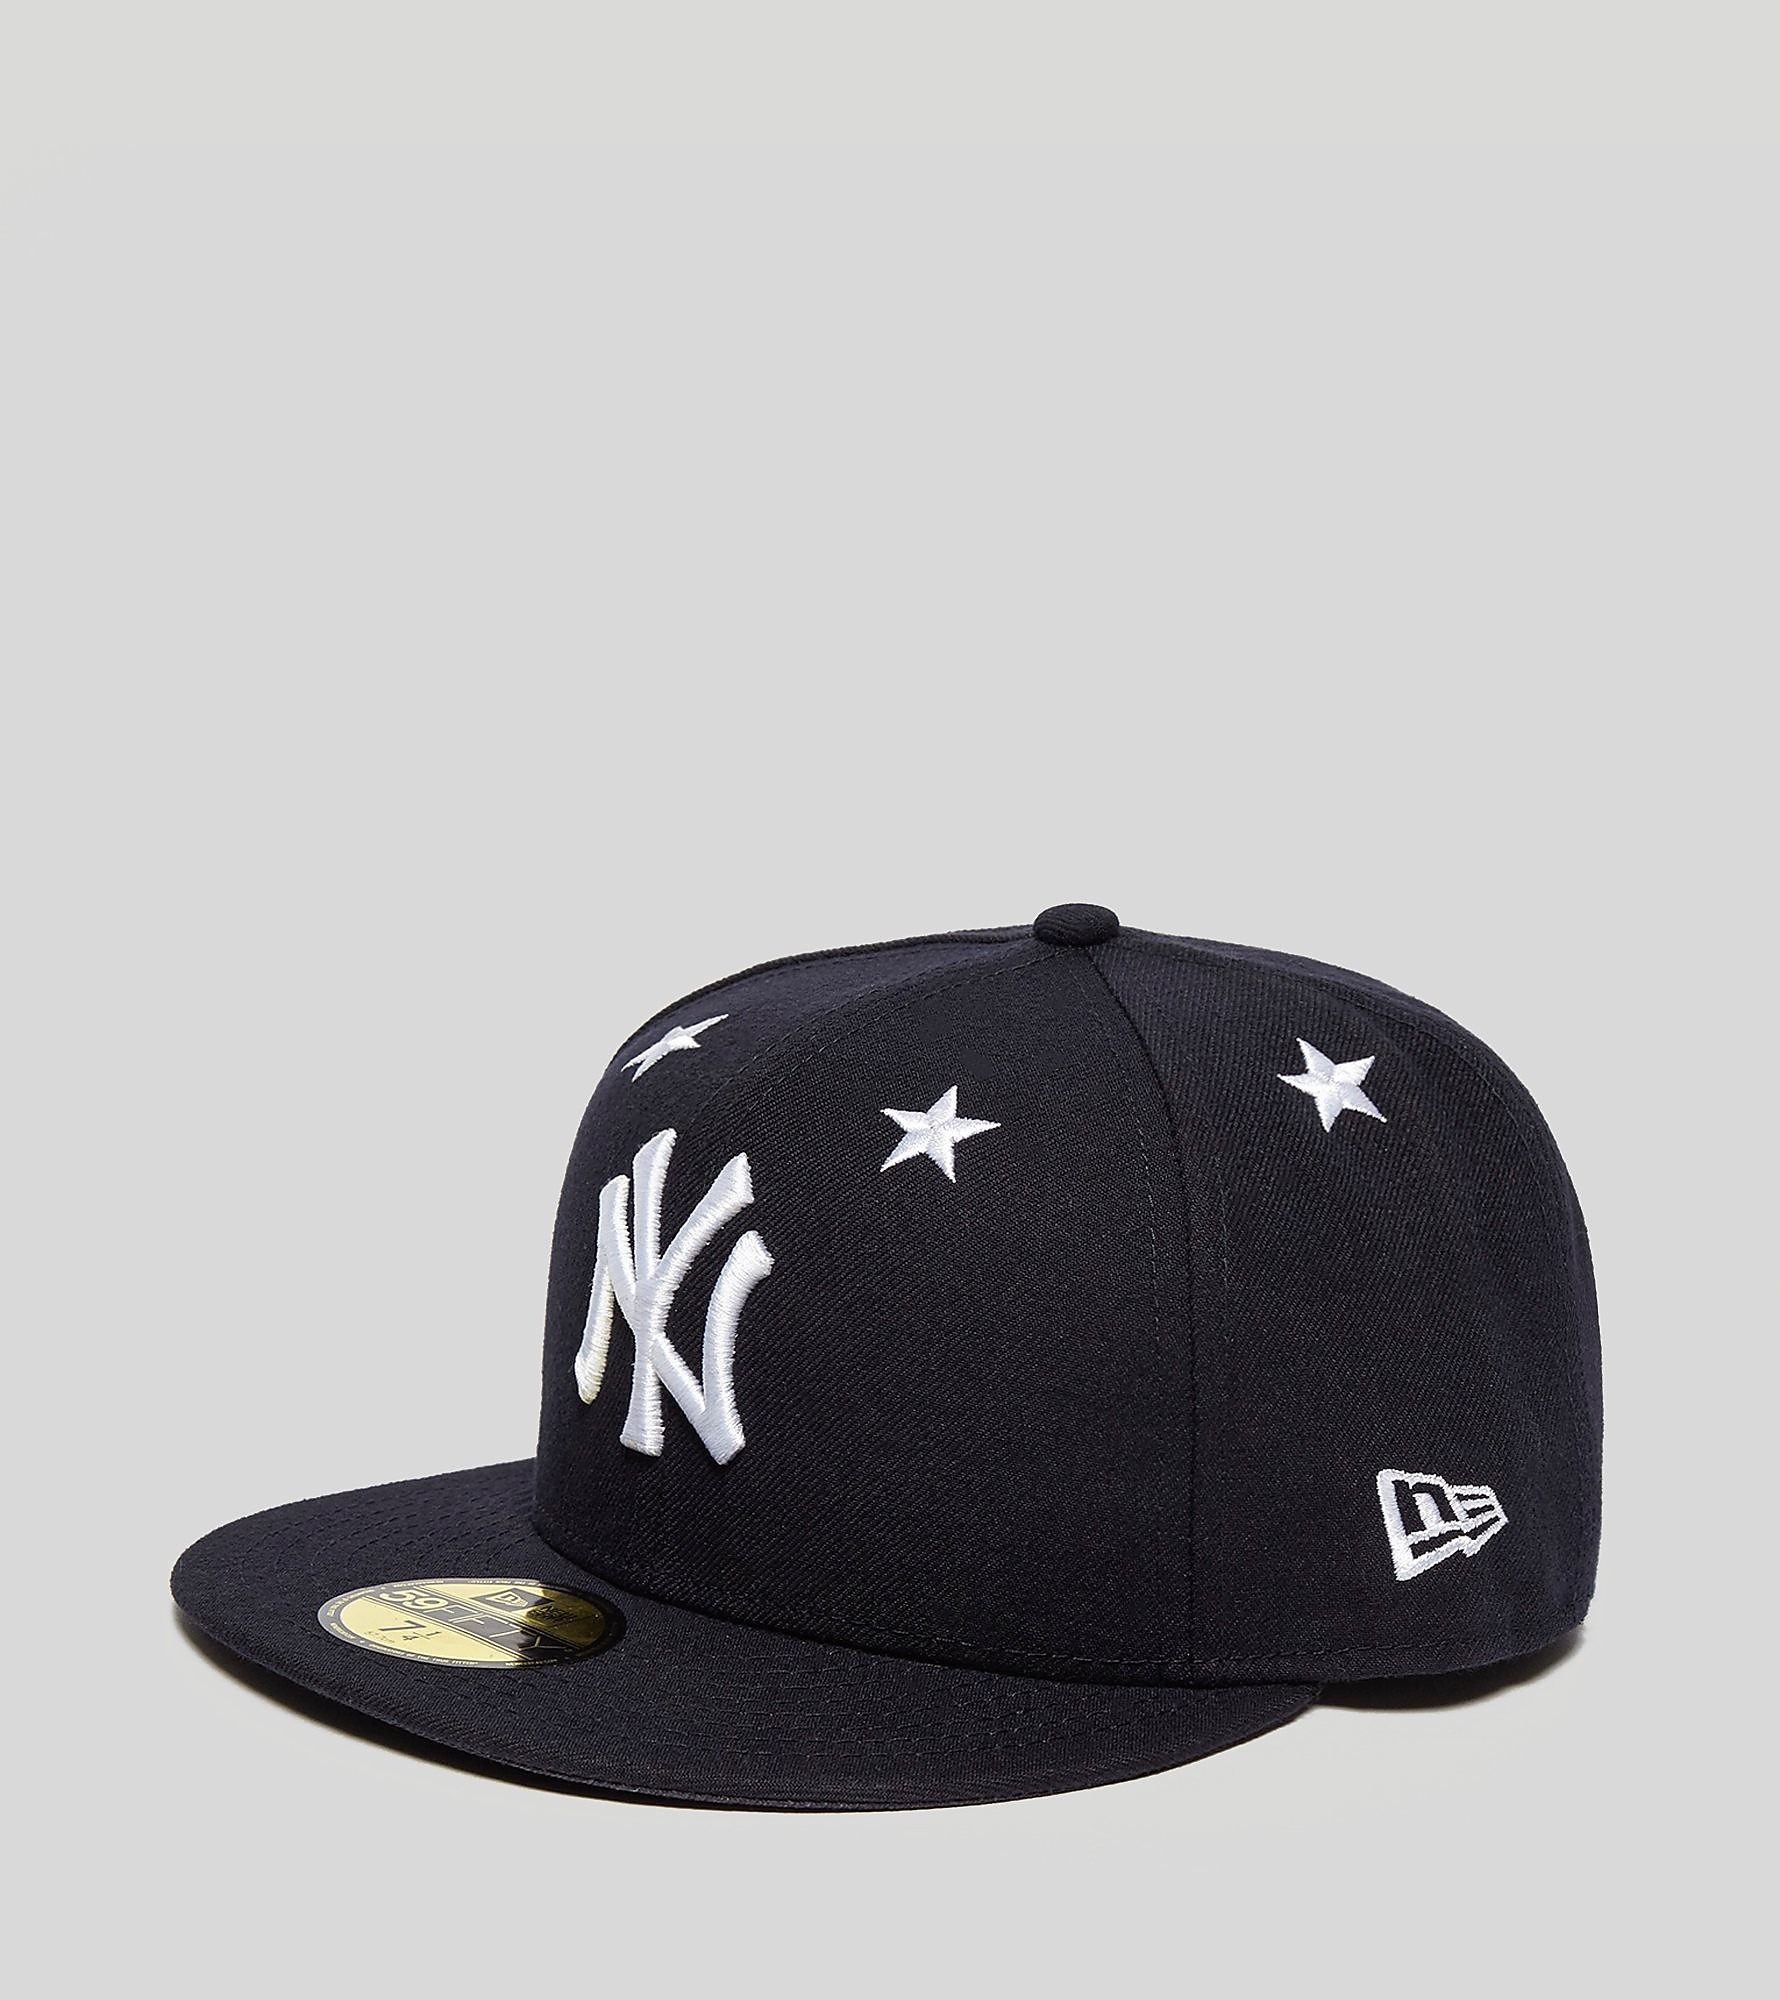 New Era 59FIFTY Star Fitted Cap